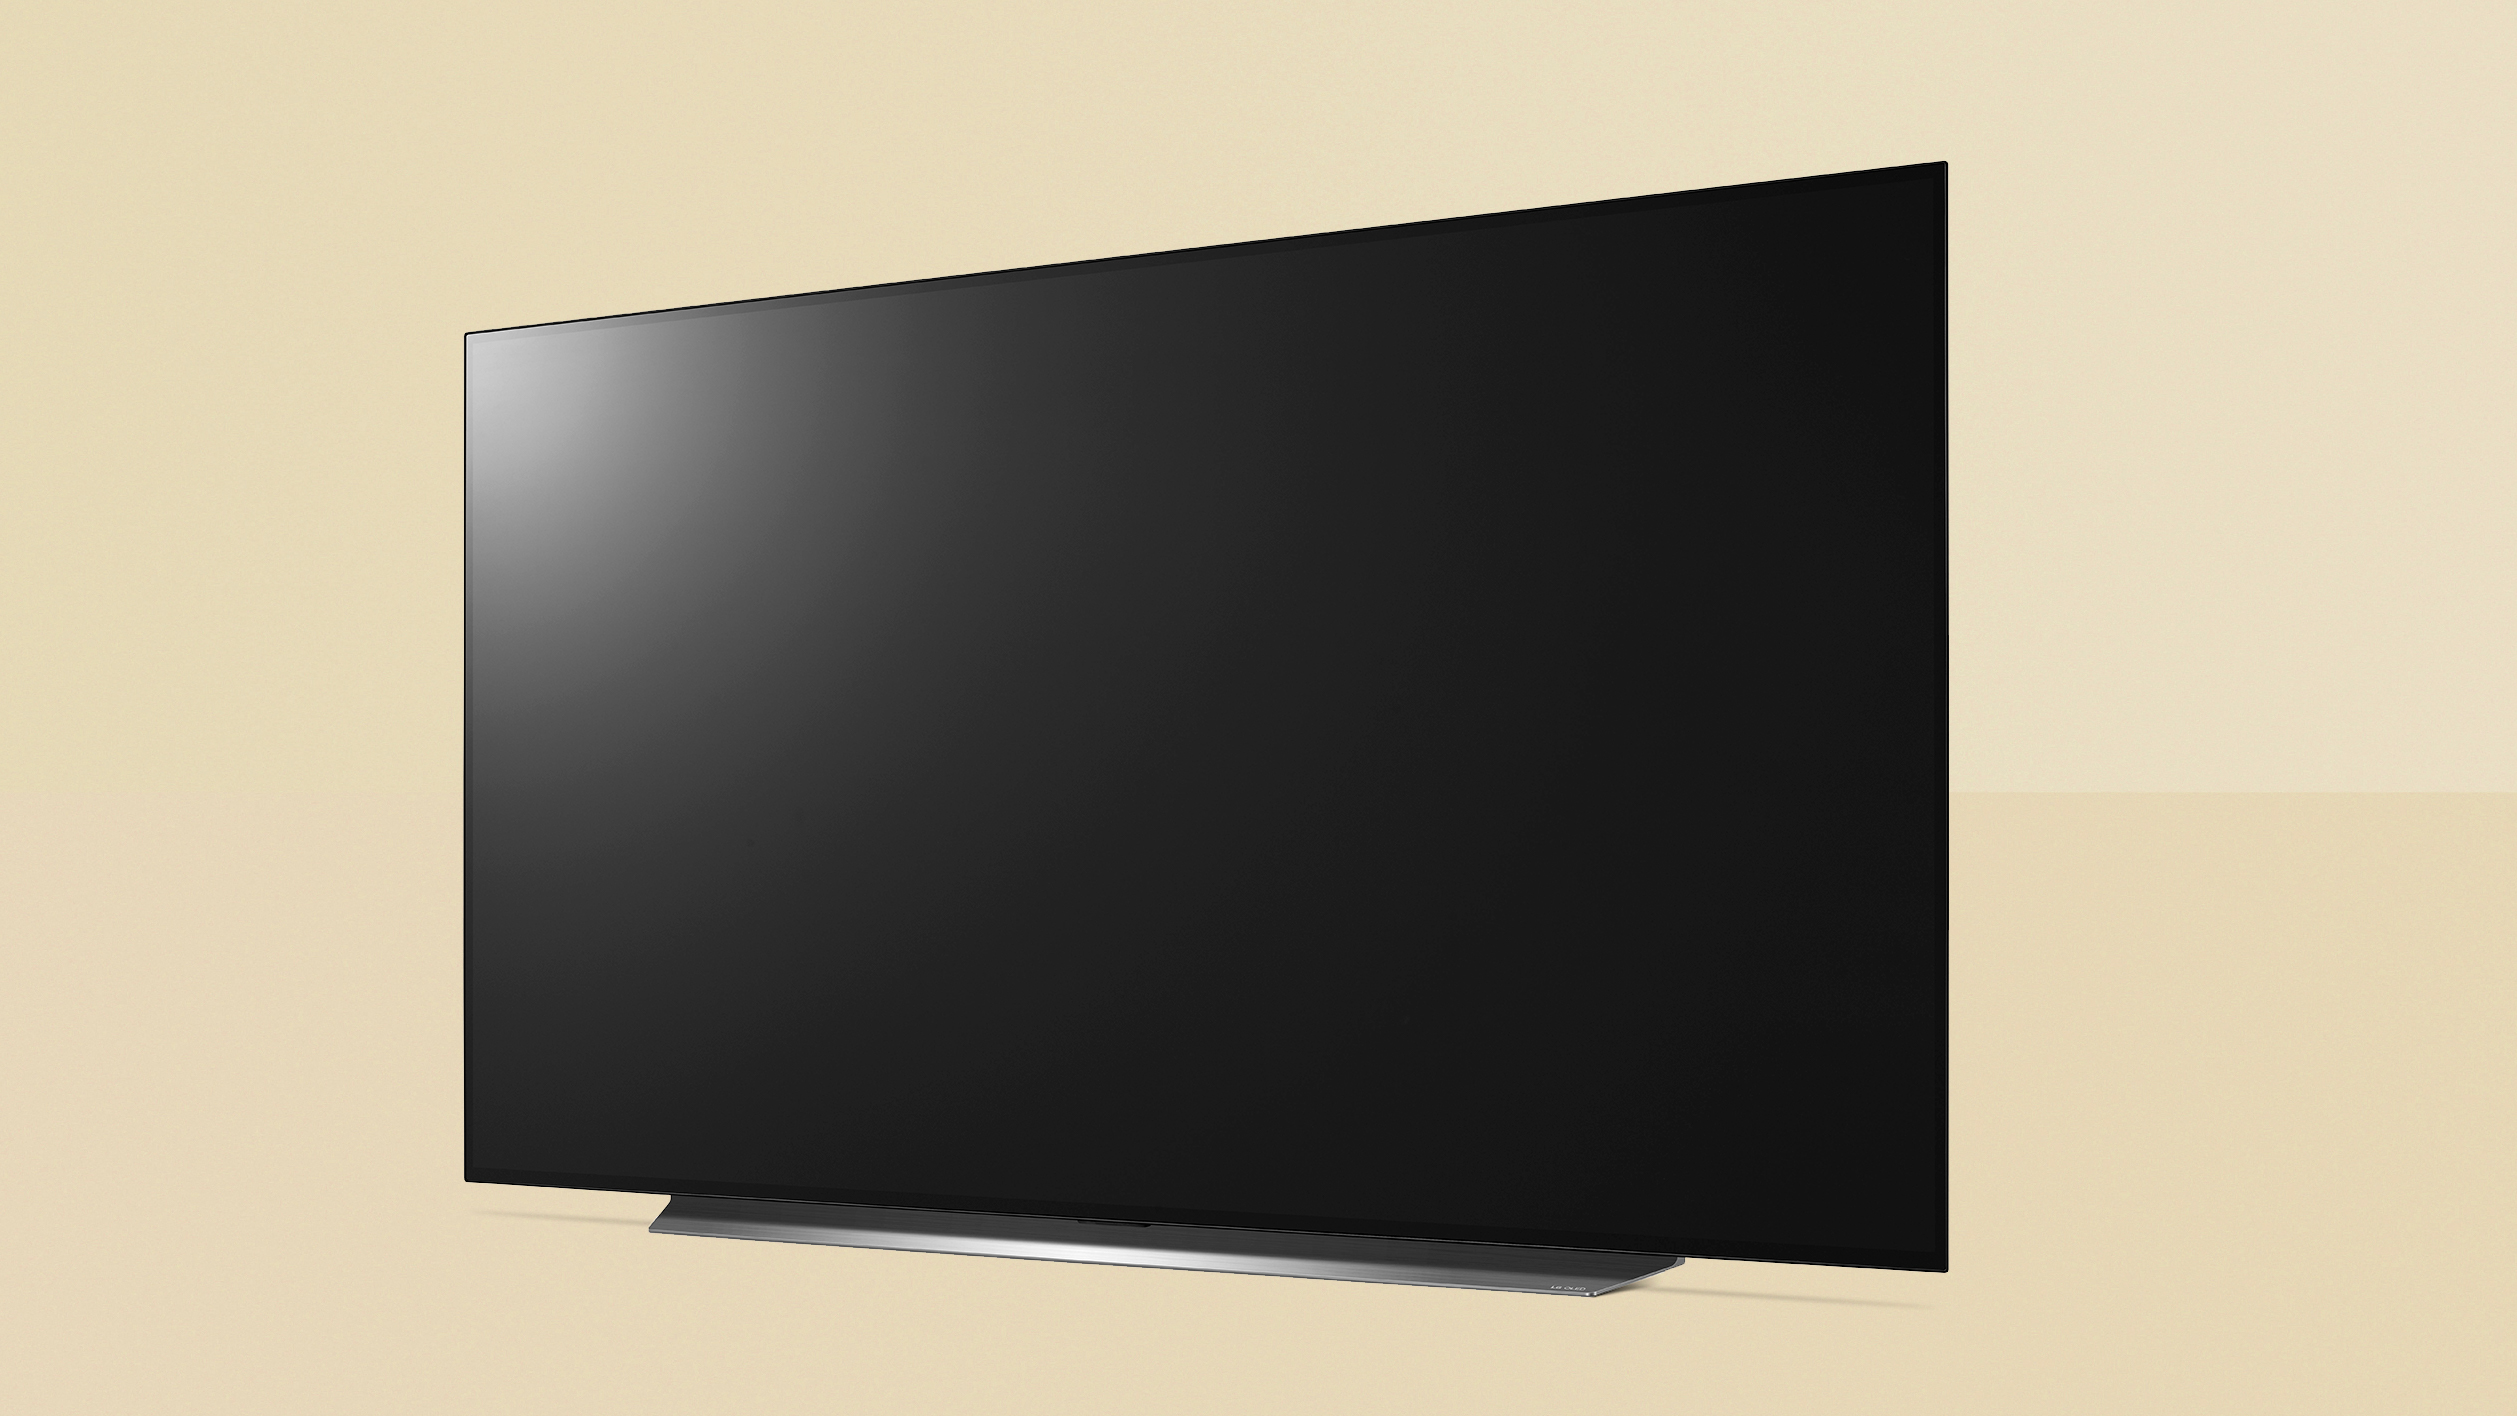 Lg Cx Oled65cx Review The Best Oled Tv For Most People T3